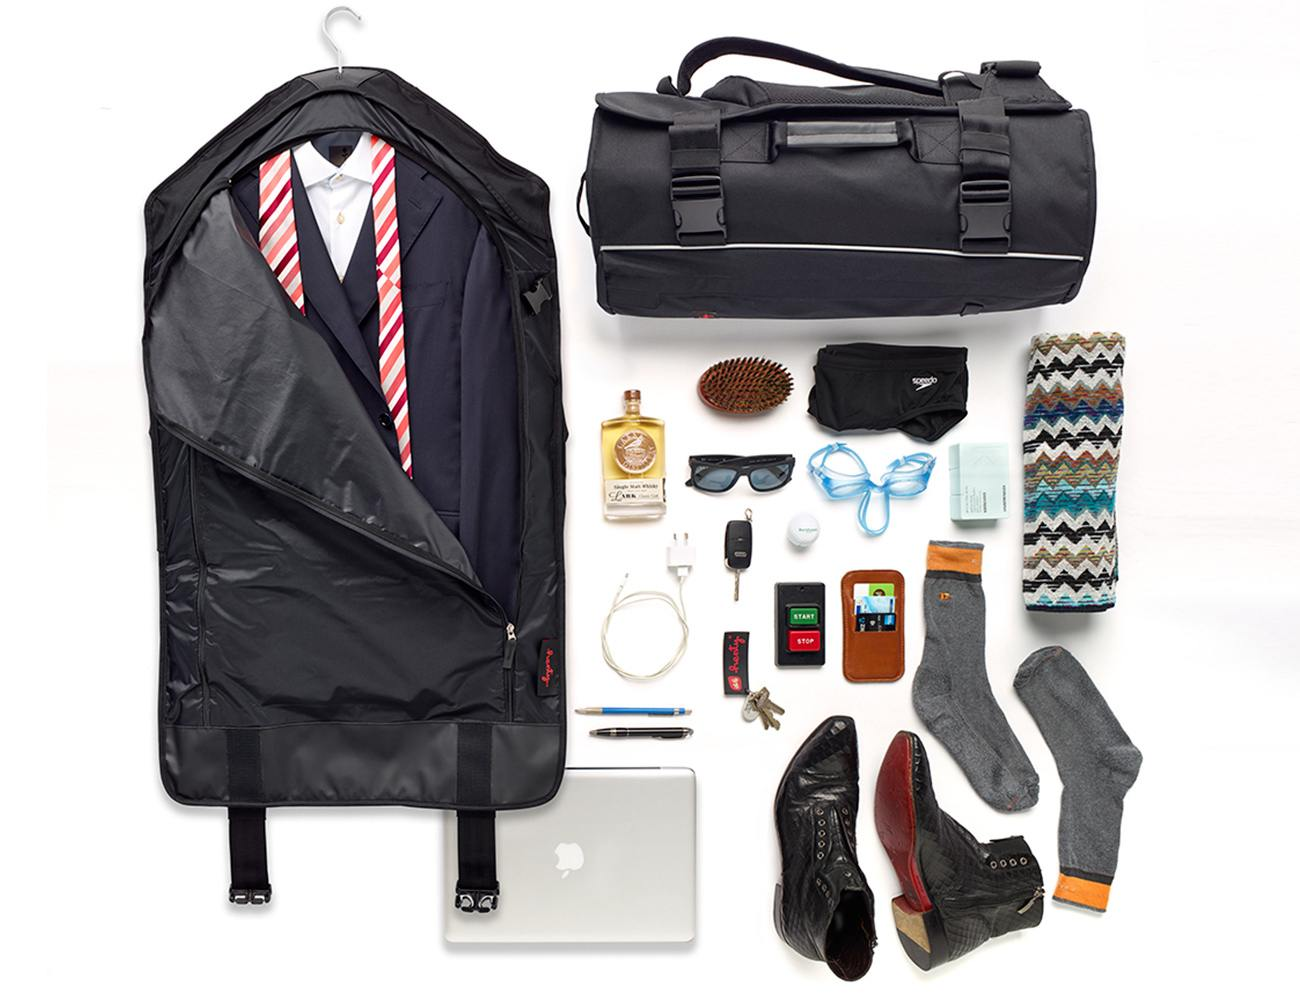 Henty CoPilot – First Two Bag System for Commuting & Travel